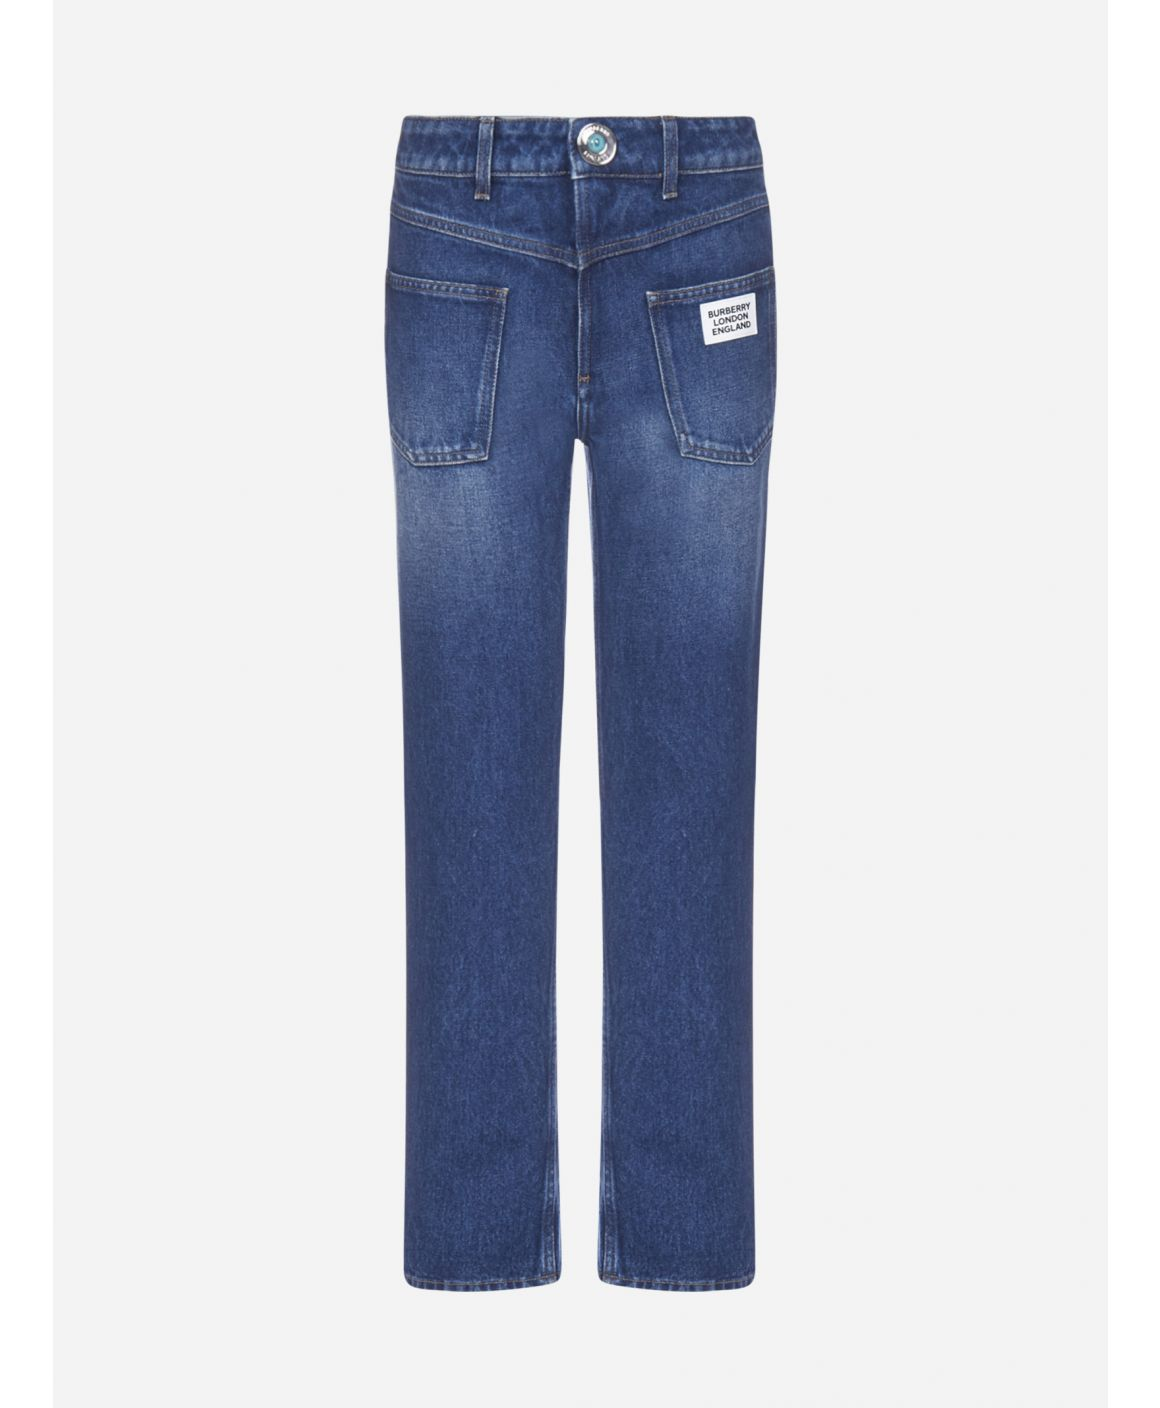 Deconstructed denim jeans